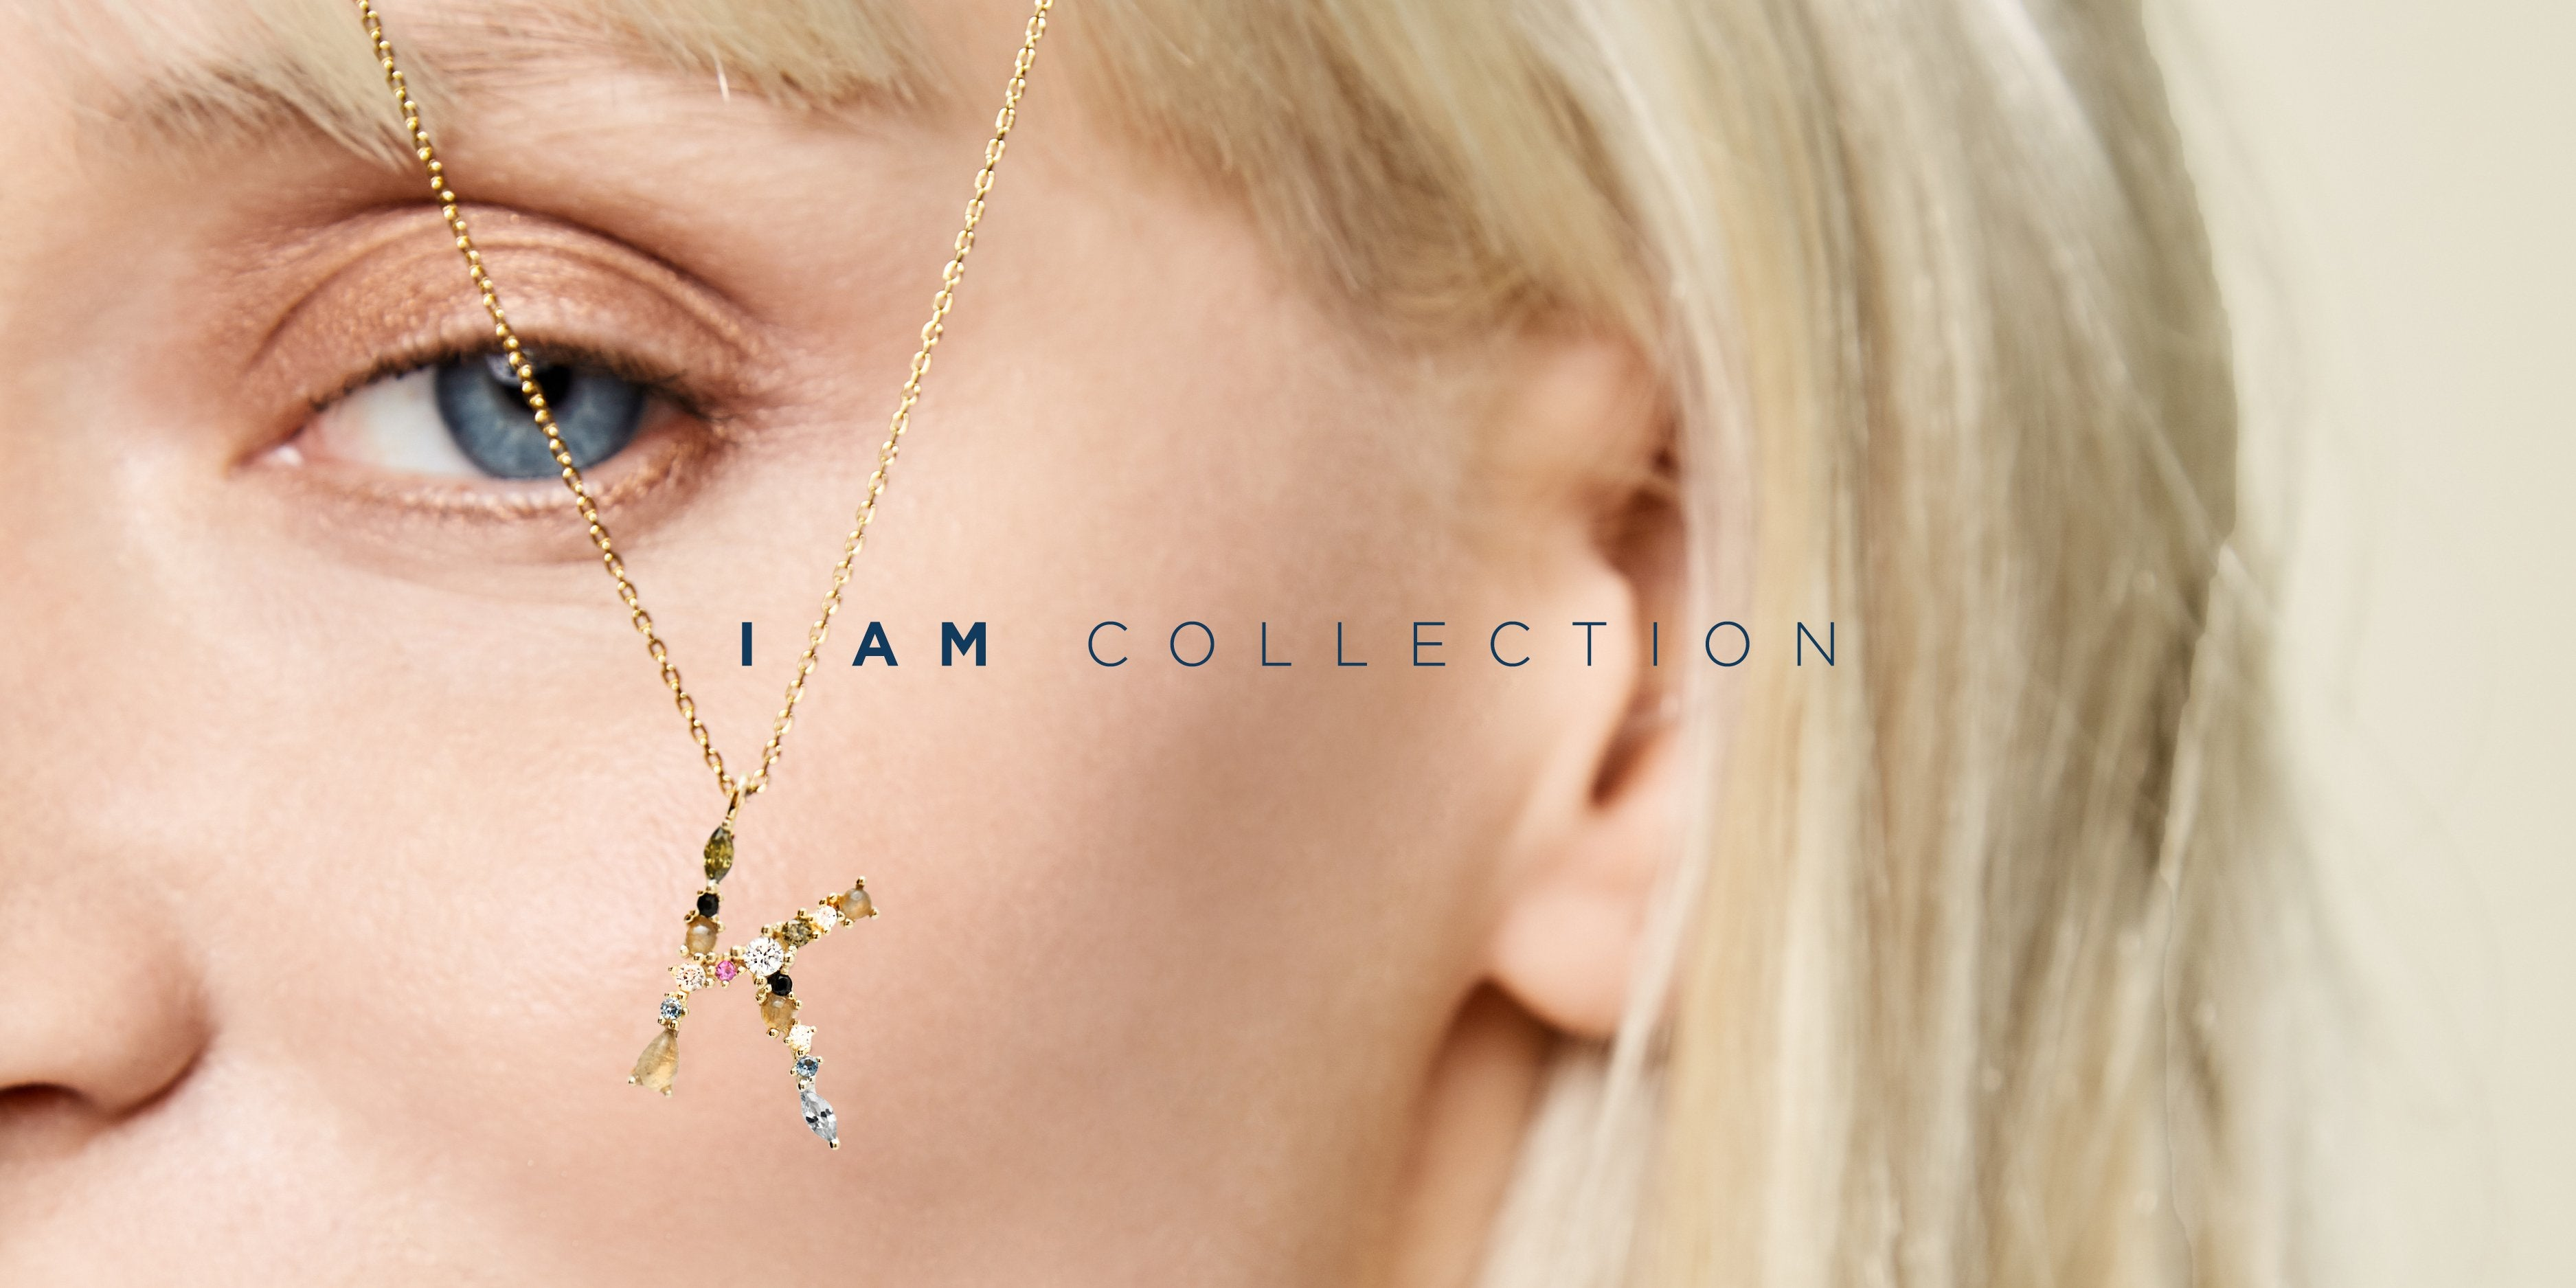 I AM Collection